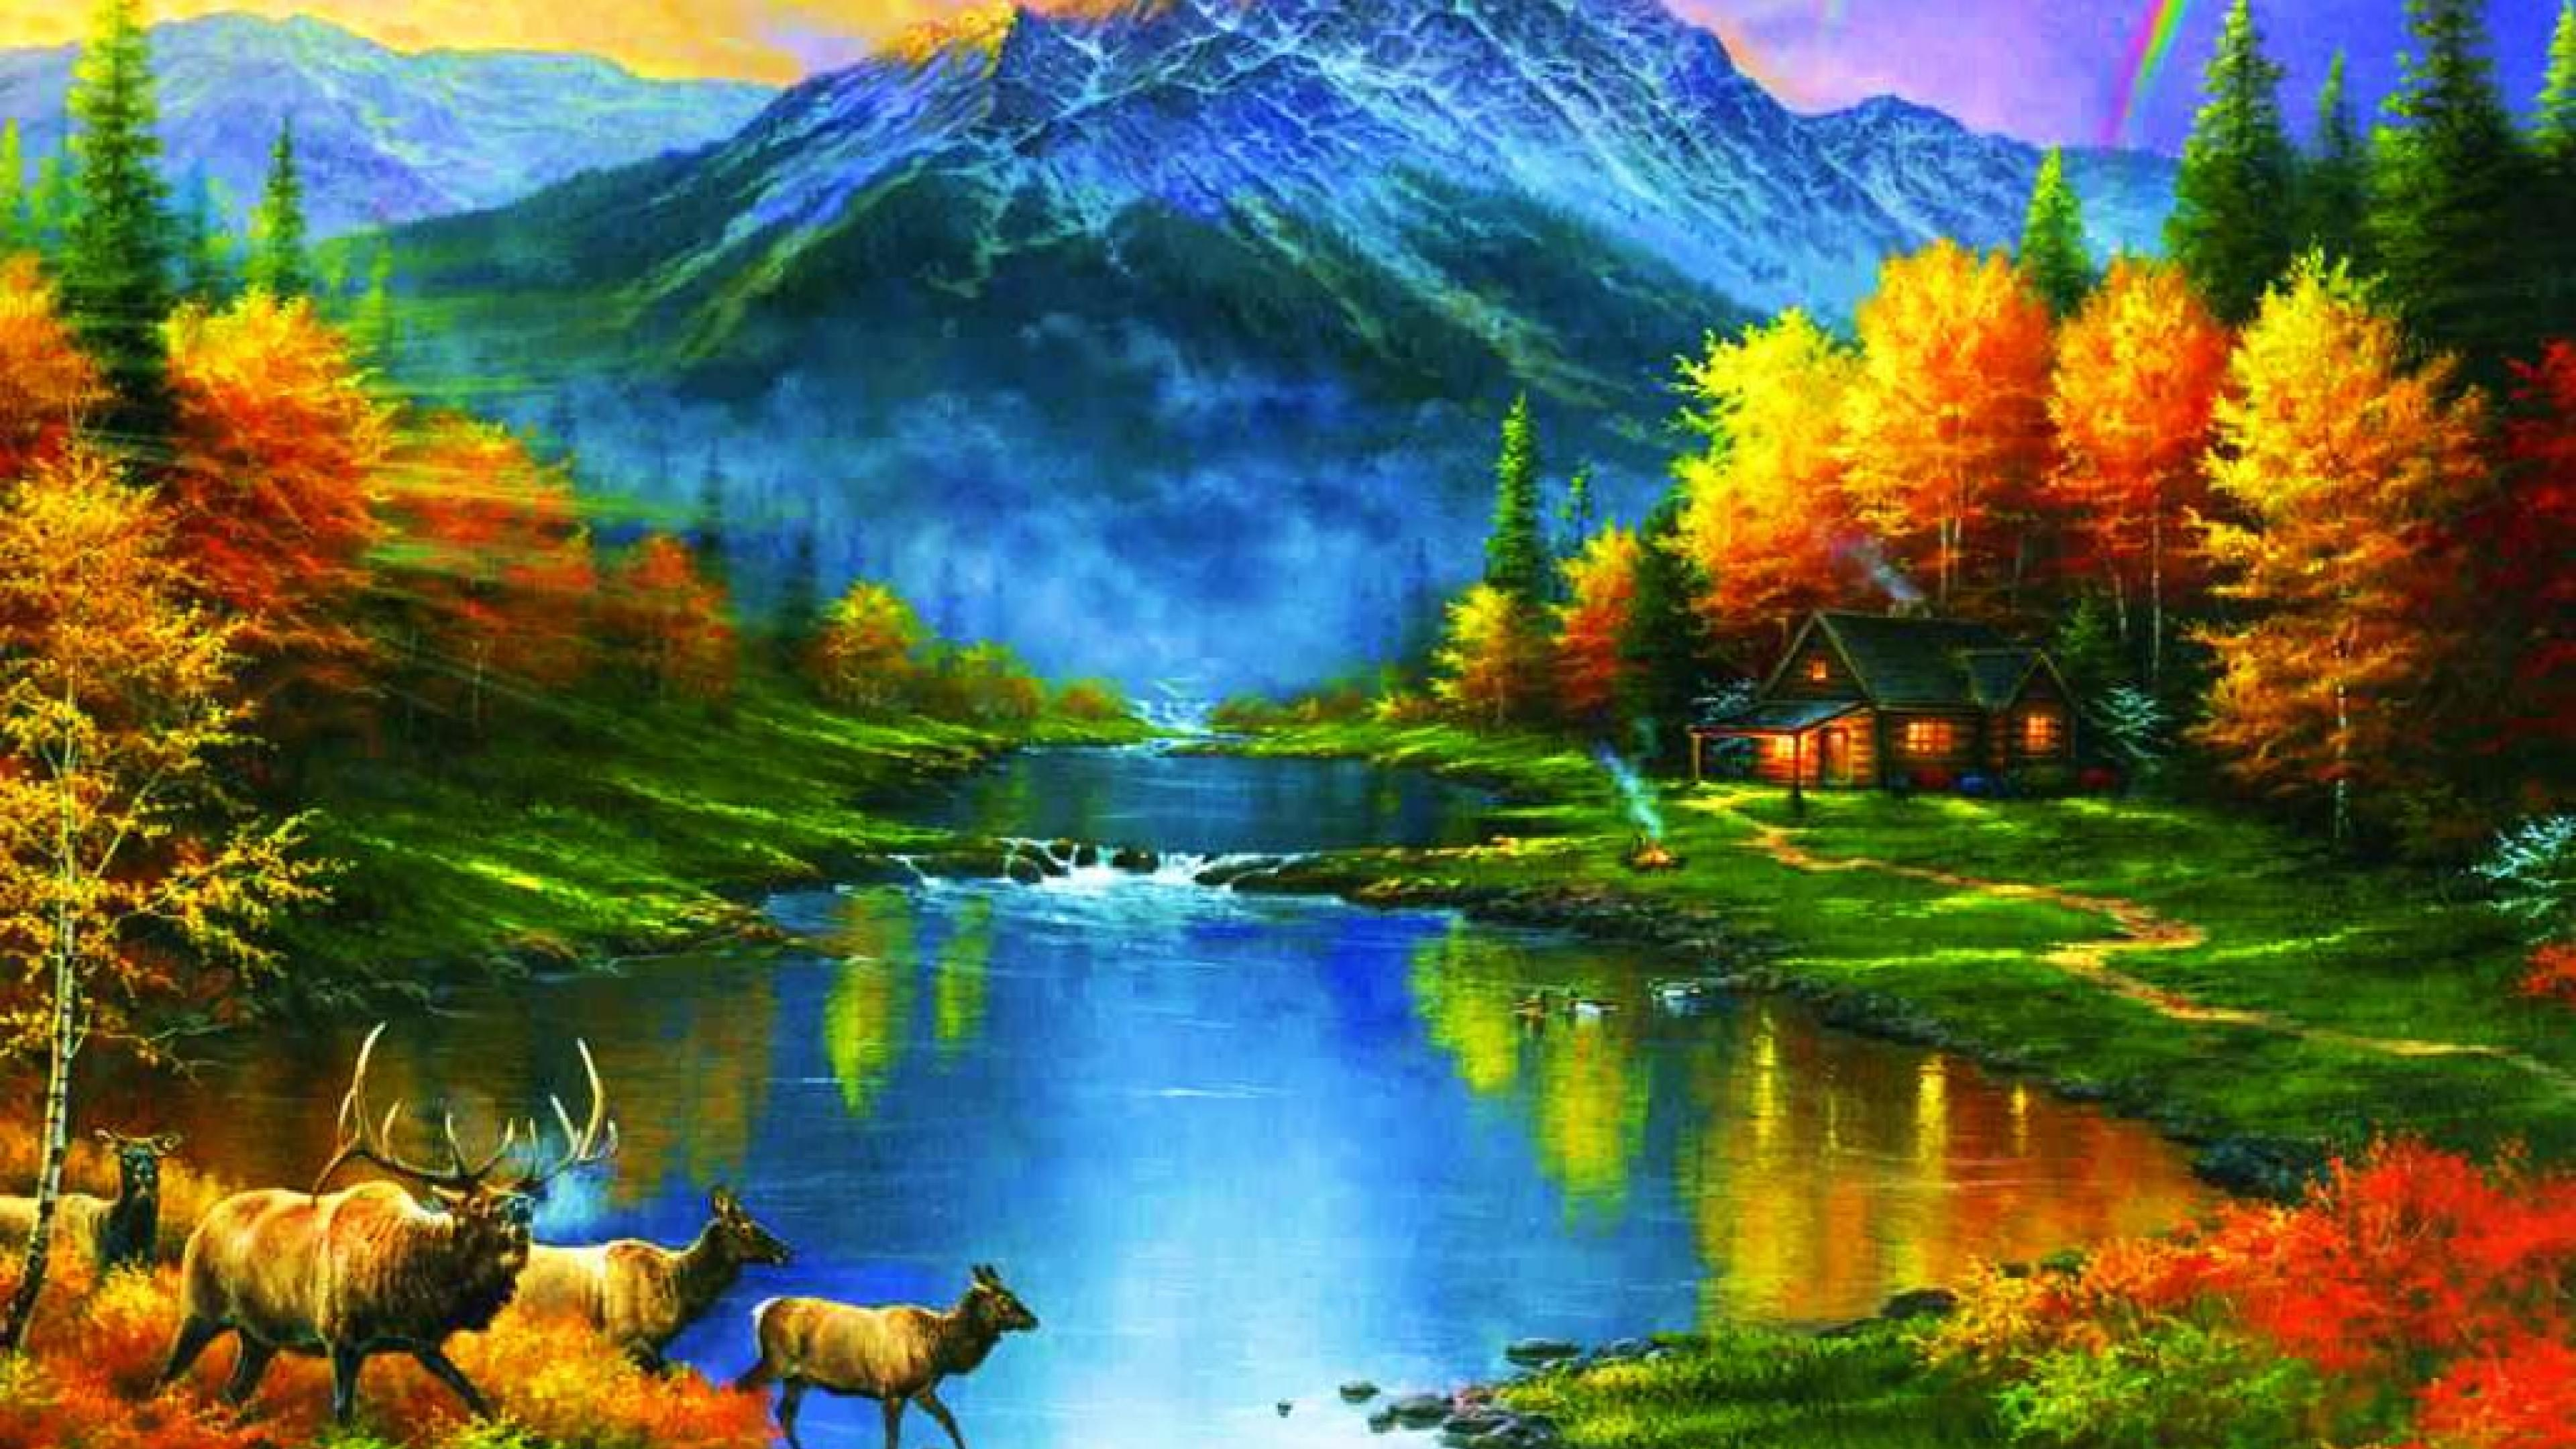 Fall Scene Wallpaper For Iphone Mountains At Fall Trees Leaves Lakes Colors Ultra Hd